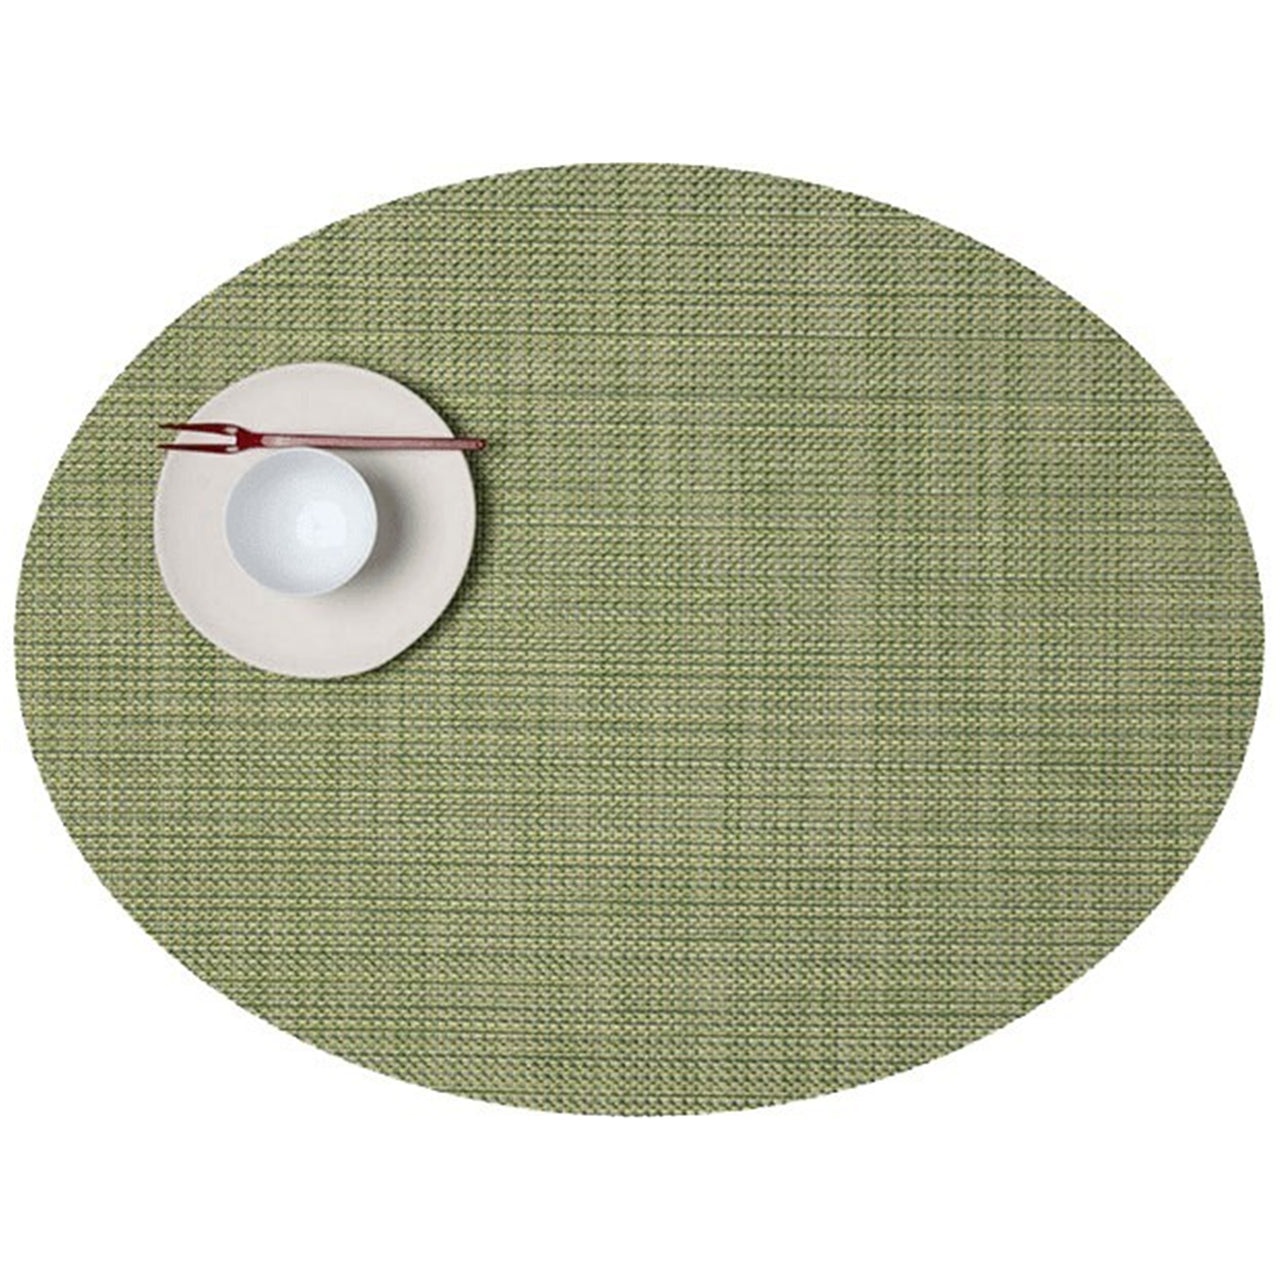 Mini Basketweave Placemats: Oval + Dill